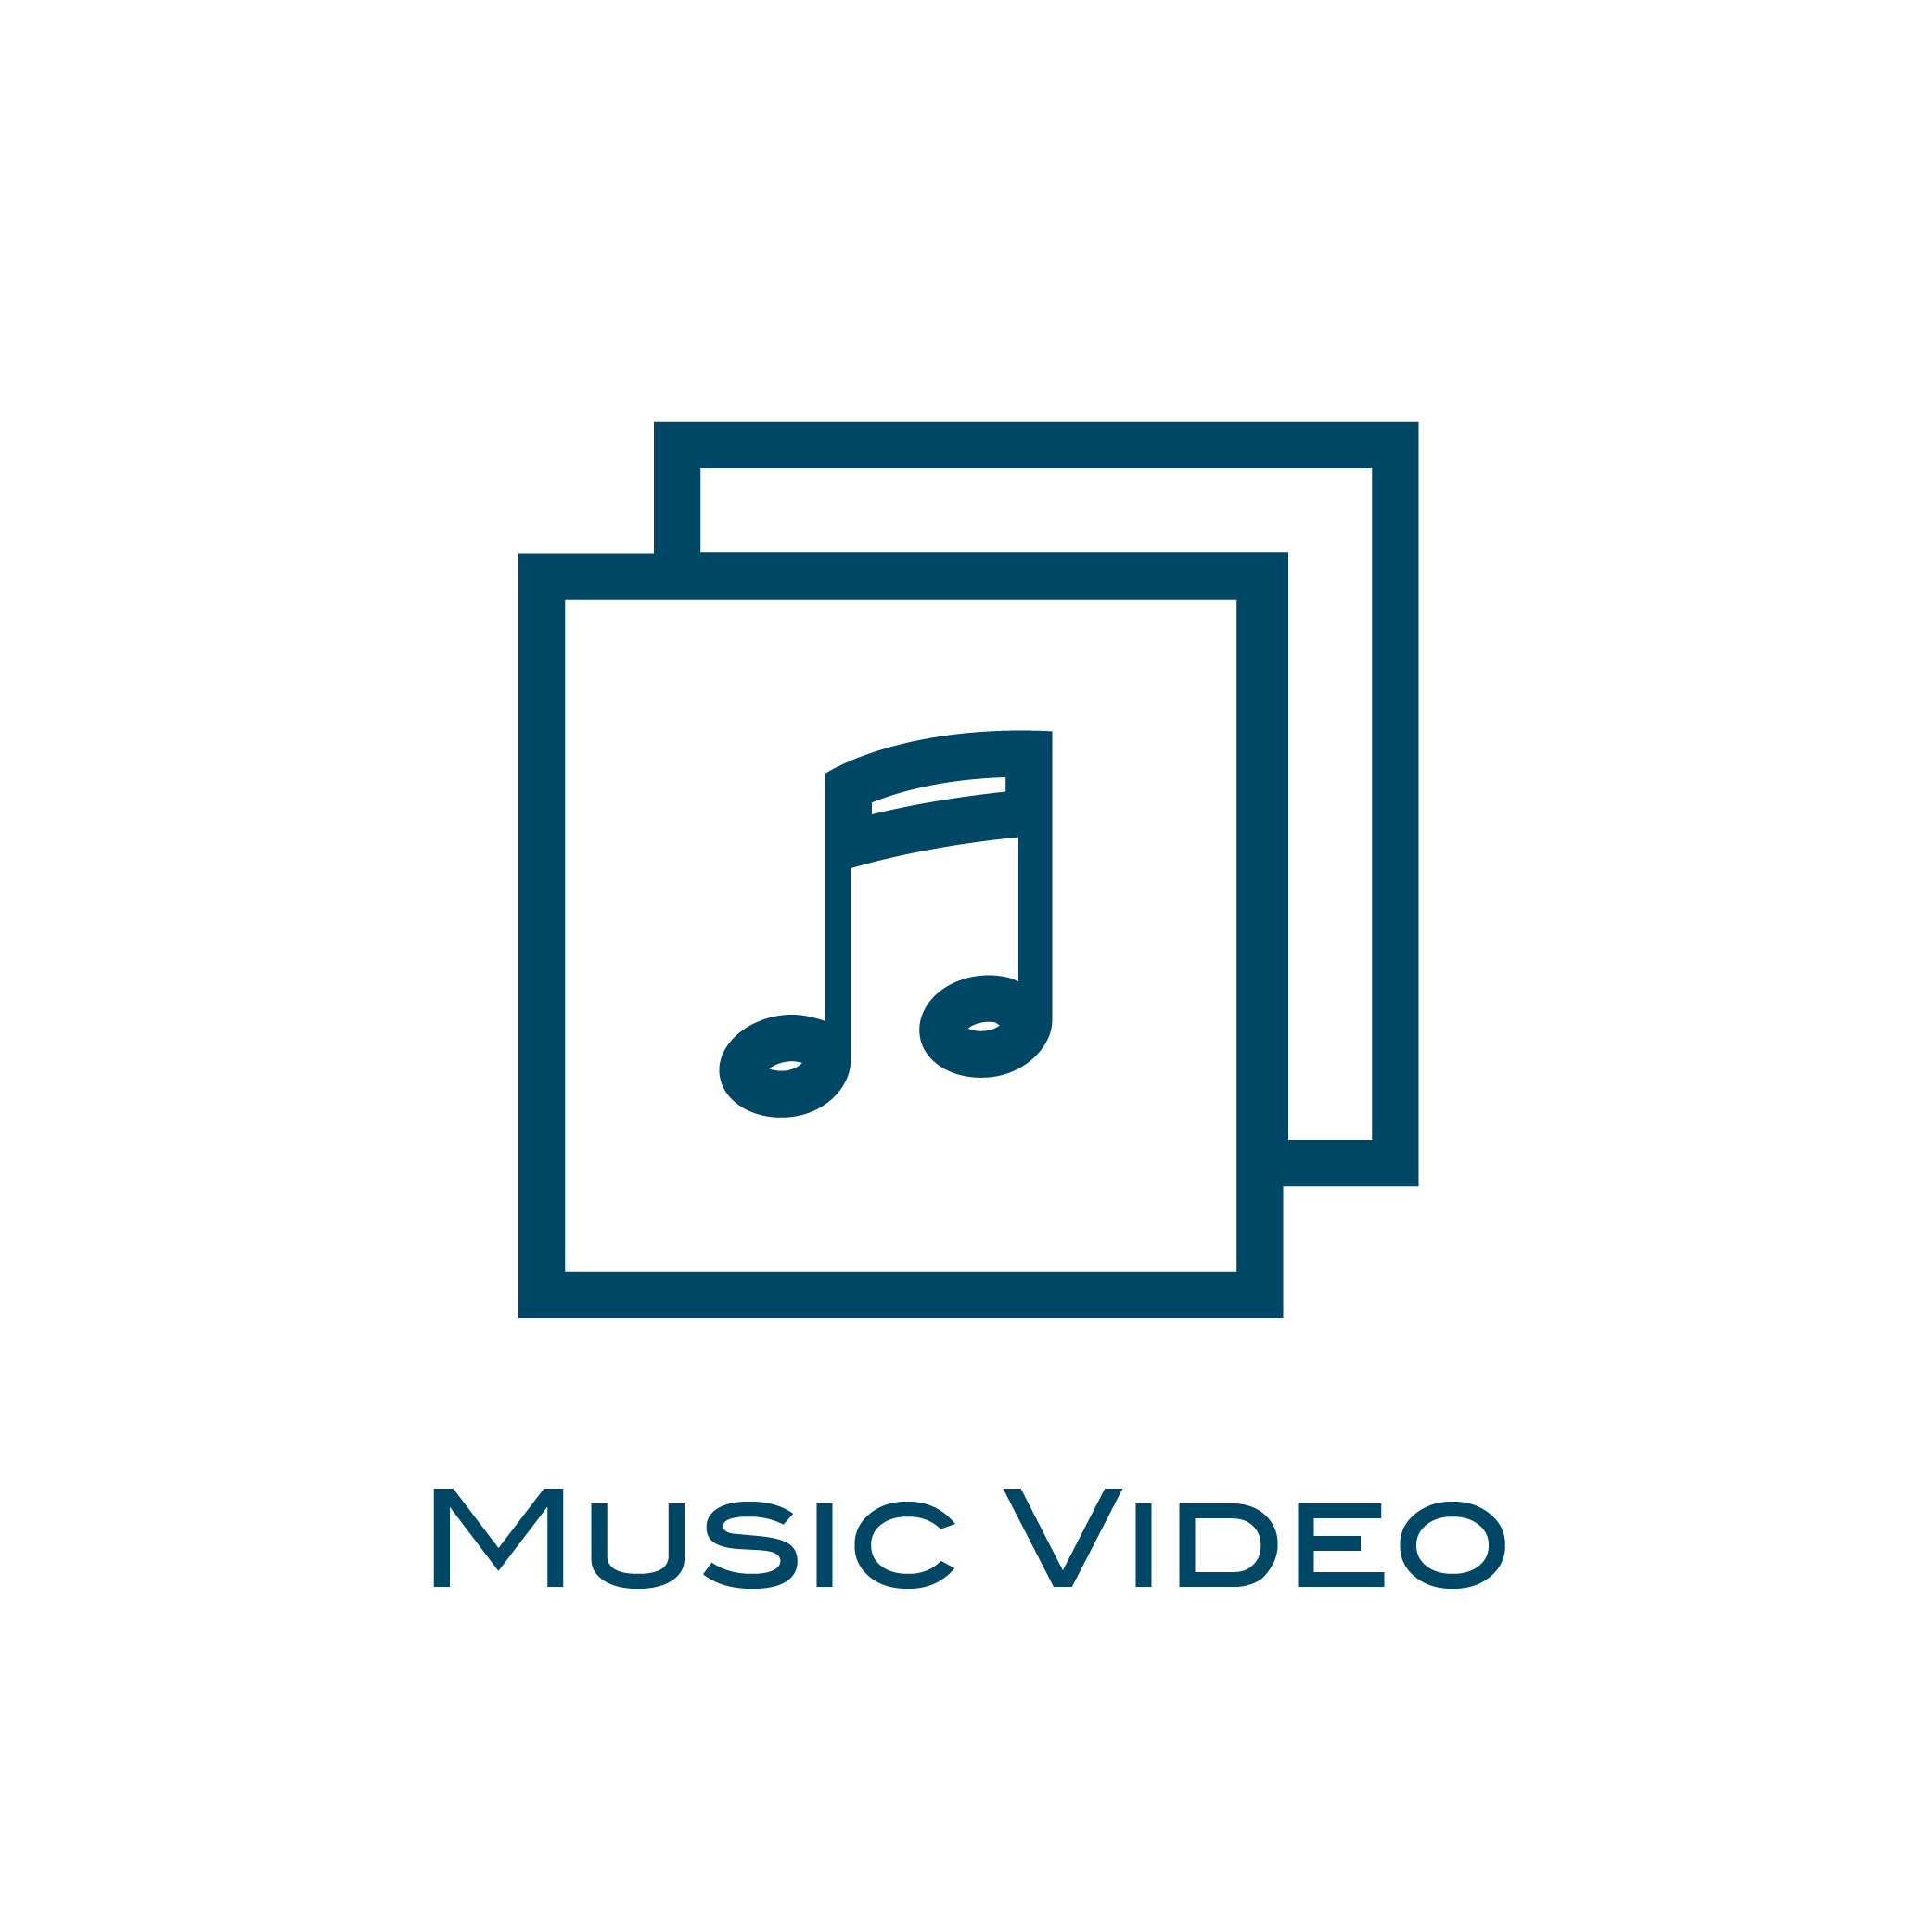 We pride ourselves in creating unforgettable, beautiful, original music videos. Our work for artists and labels in the UK and France has been rewarded with numerous international awards.